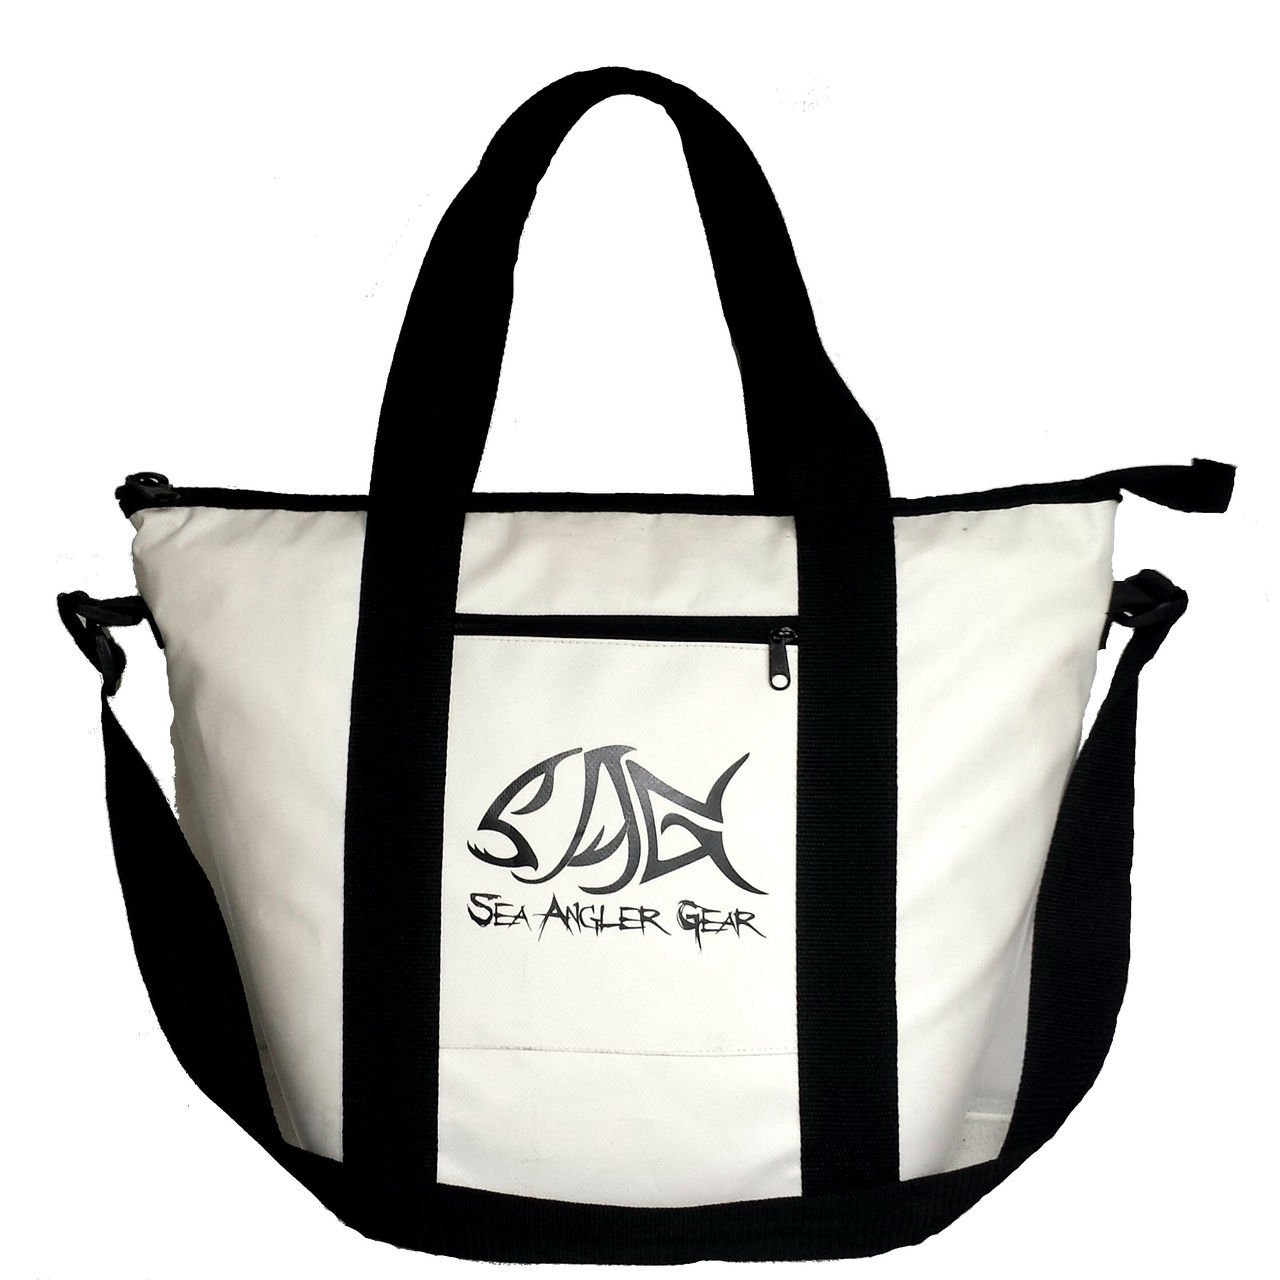 Sea Angler Gear Insulated Soft Cooler Bag by Sea Angler Gear